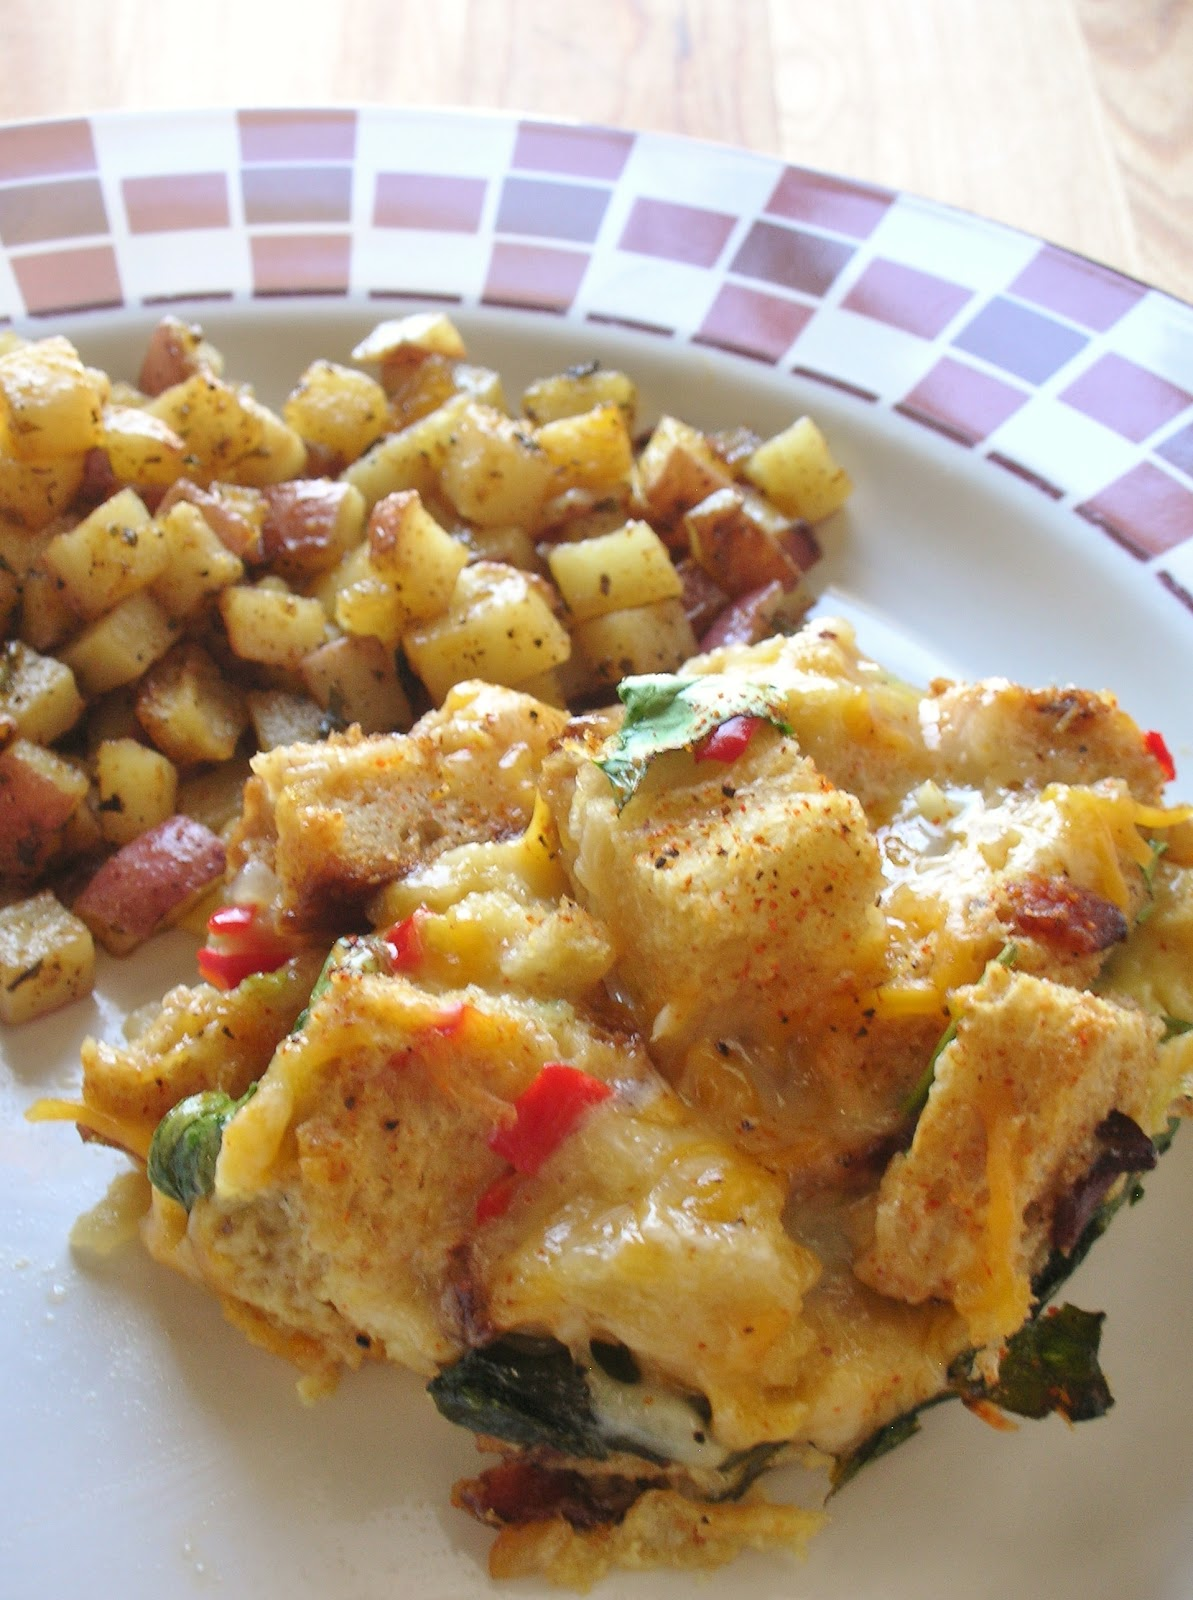 Basil: Savory Breakfast Bread Pudding